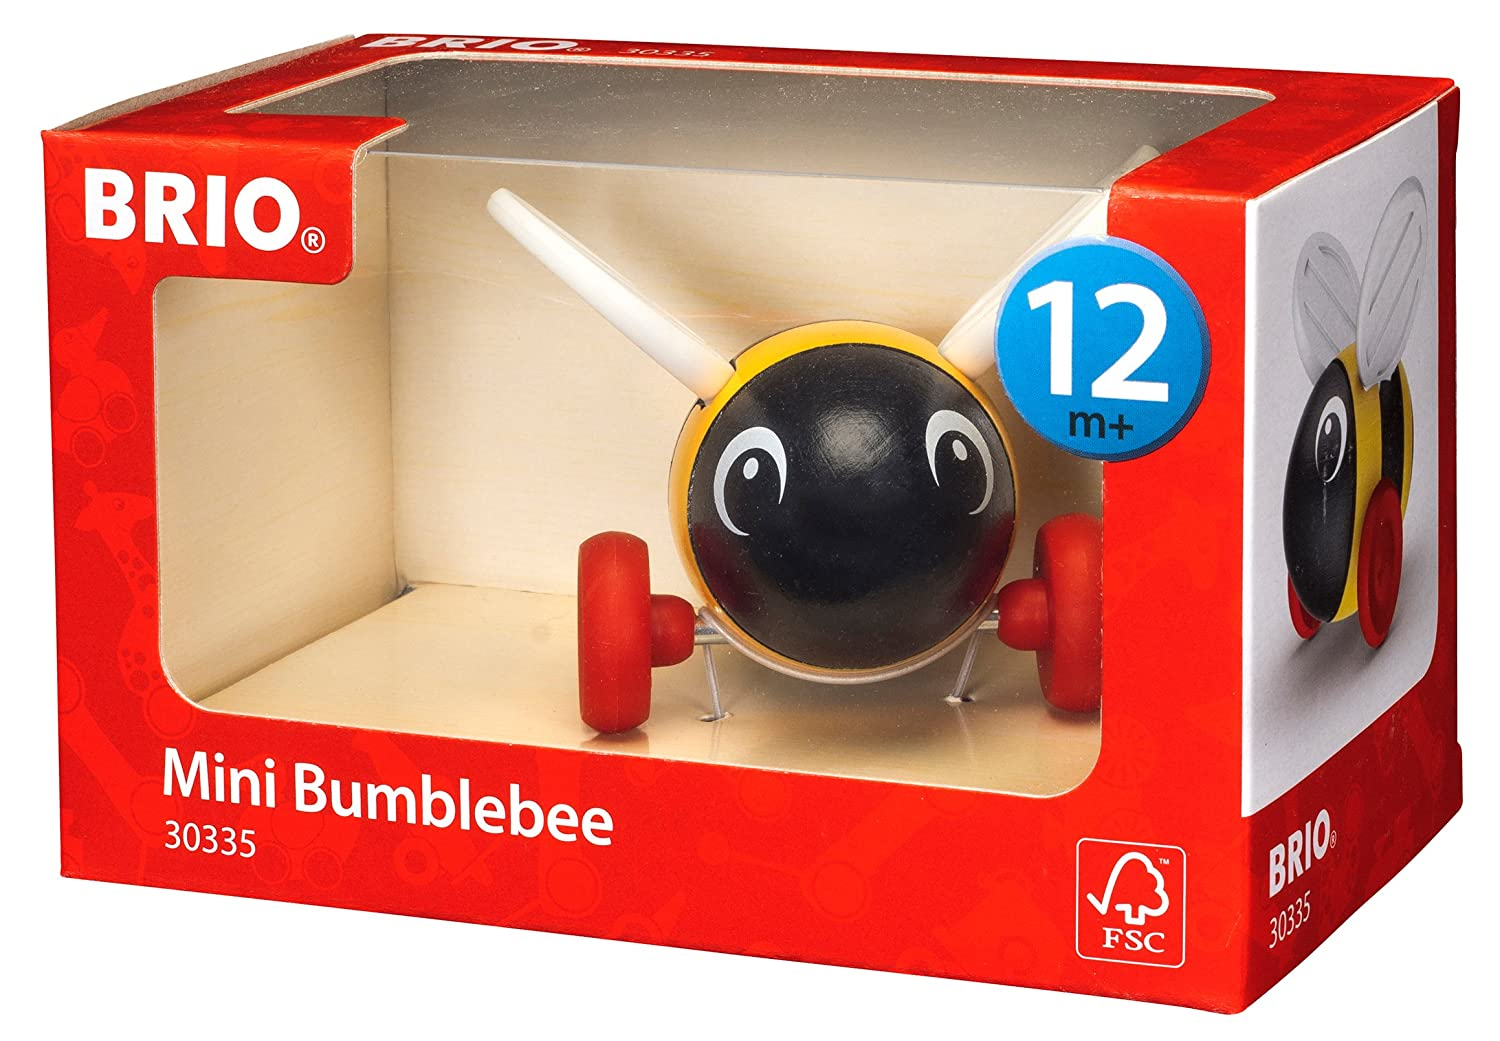 BRIO BRIO Mini Bumble Bee Baby Toy